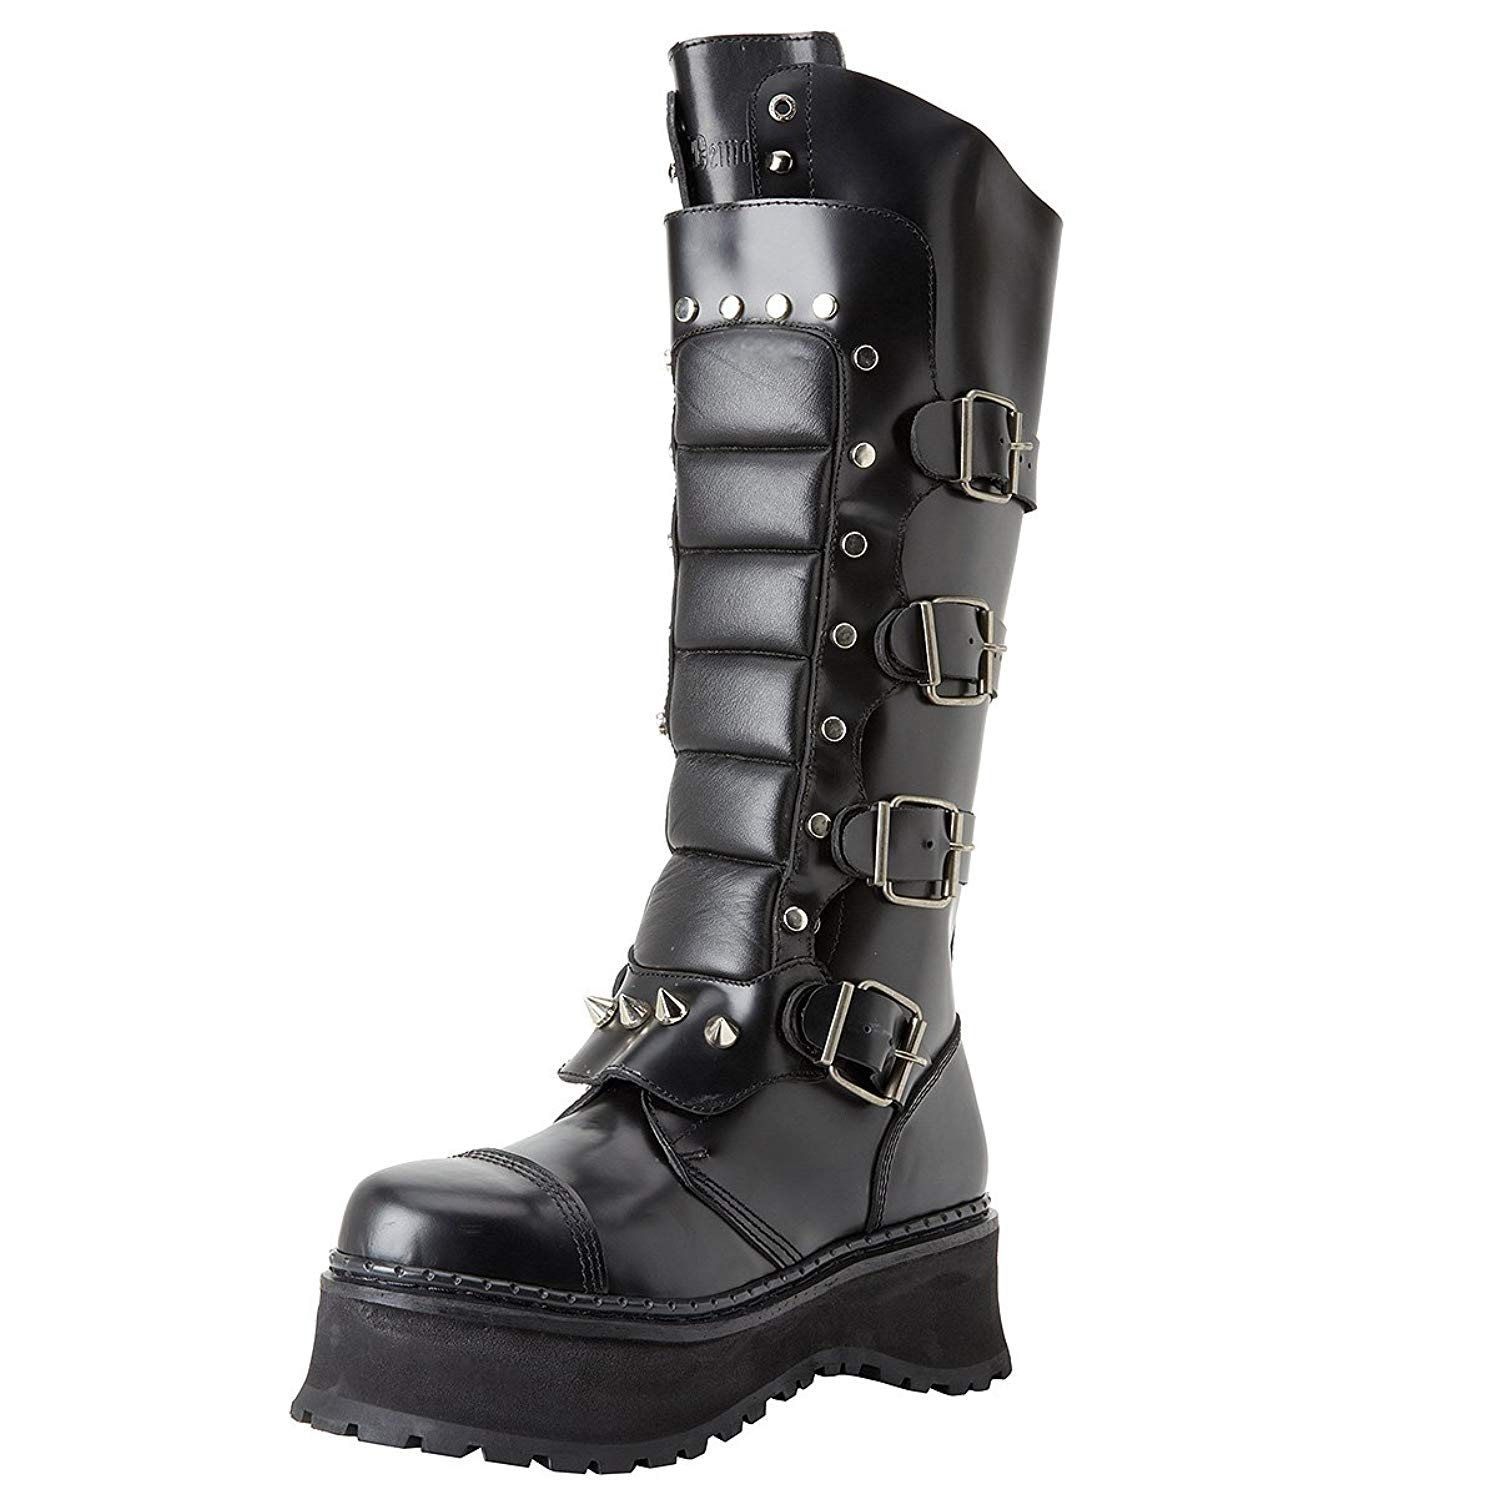 25c02219095 Get Quotations · Mens Black Leather Gothic Boots Knee High Warrior Boots  Steel Toe MENS SIZING